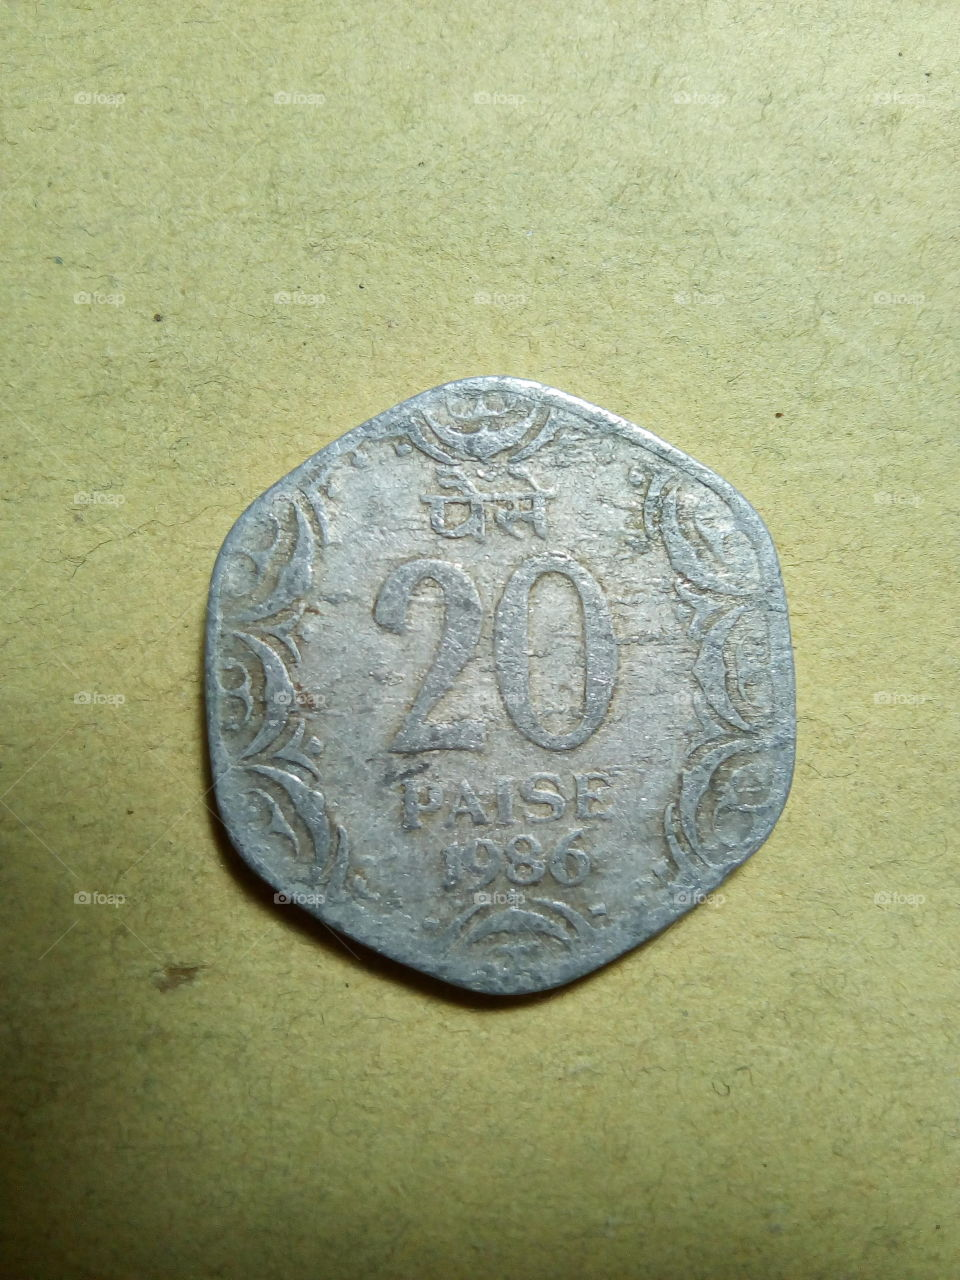 A coin of twenty paise- 1/5 share of Indian Rupee issued by Government of India in 1986.